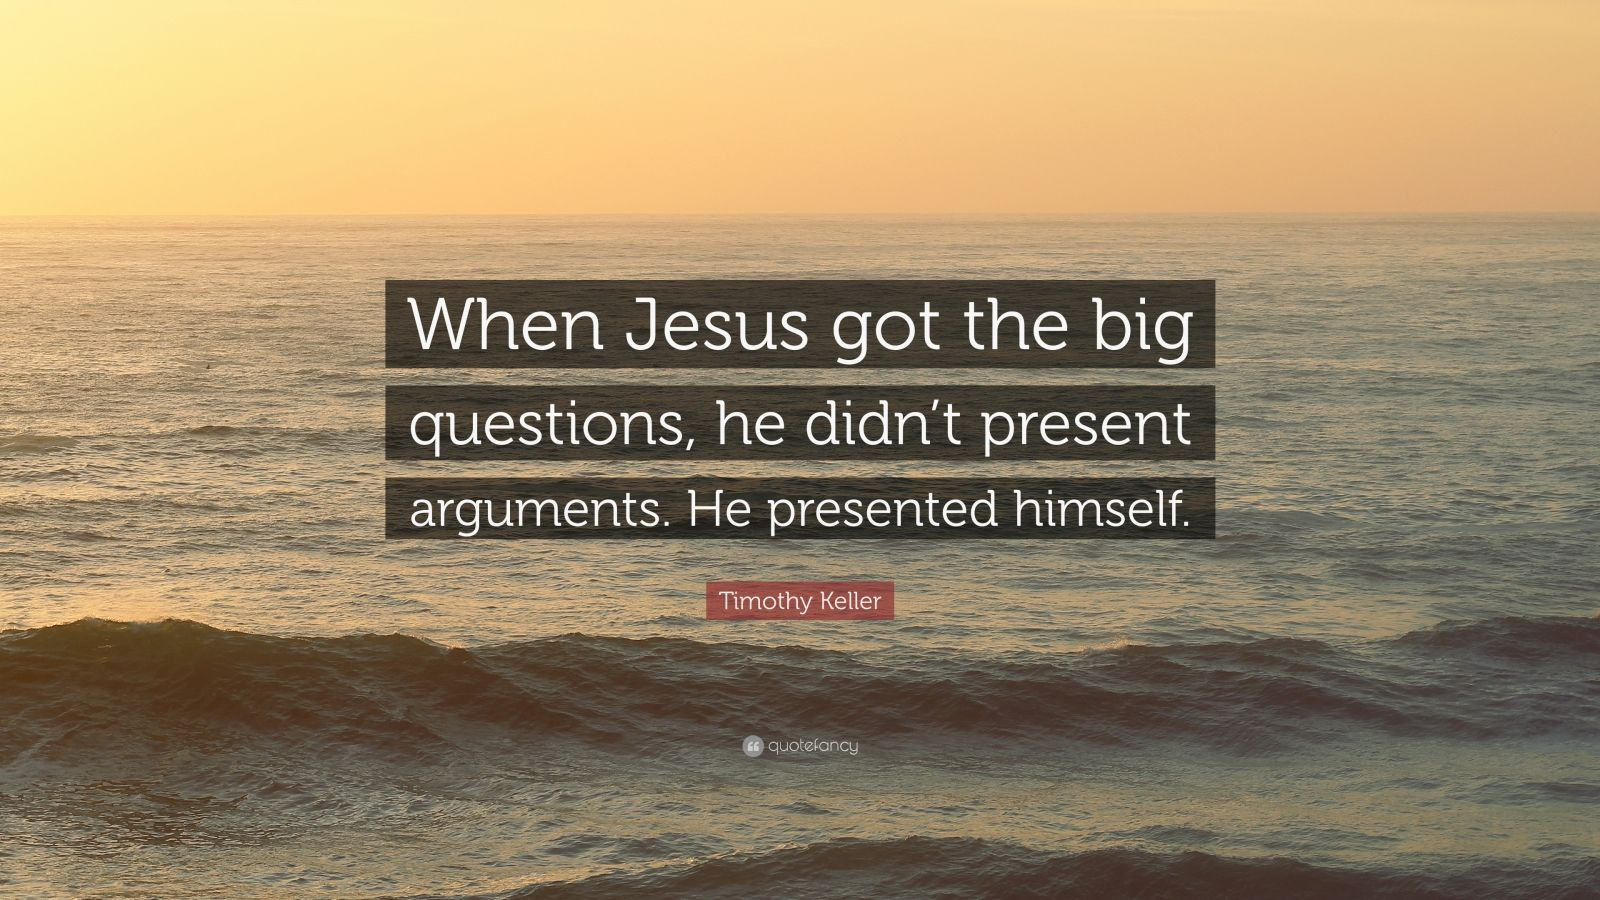 """Timothy Keller Quote: """"When Jesus got the big questions, he didn't present arguments. He presented himself."""""""